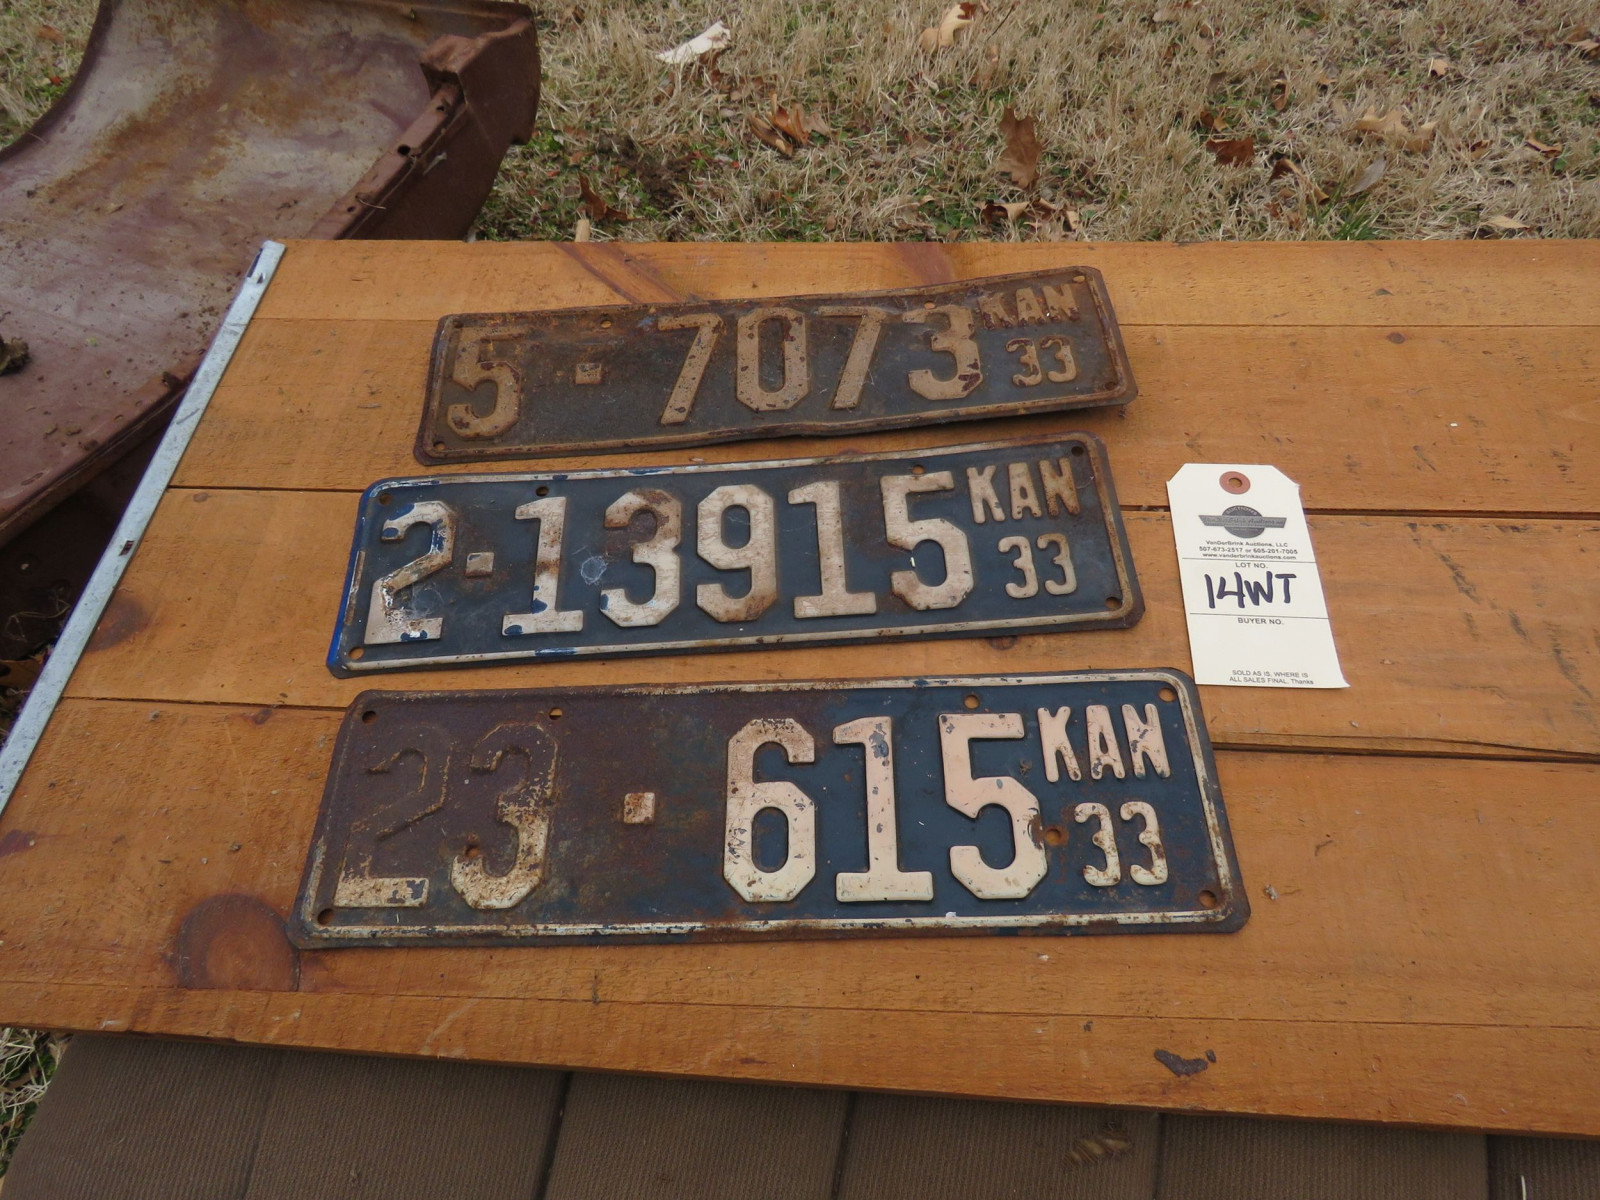 1933 Kansas License Plates - Image 1